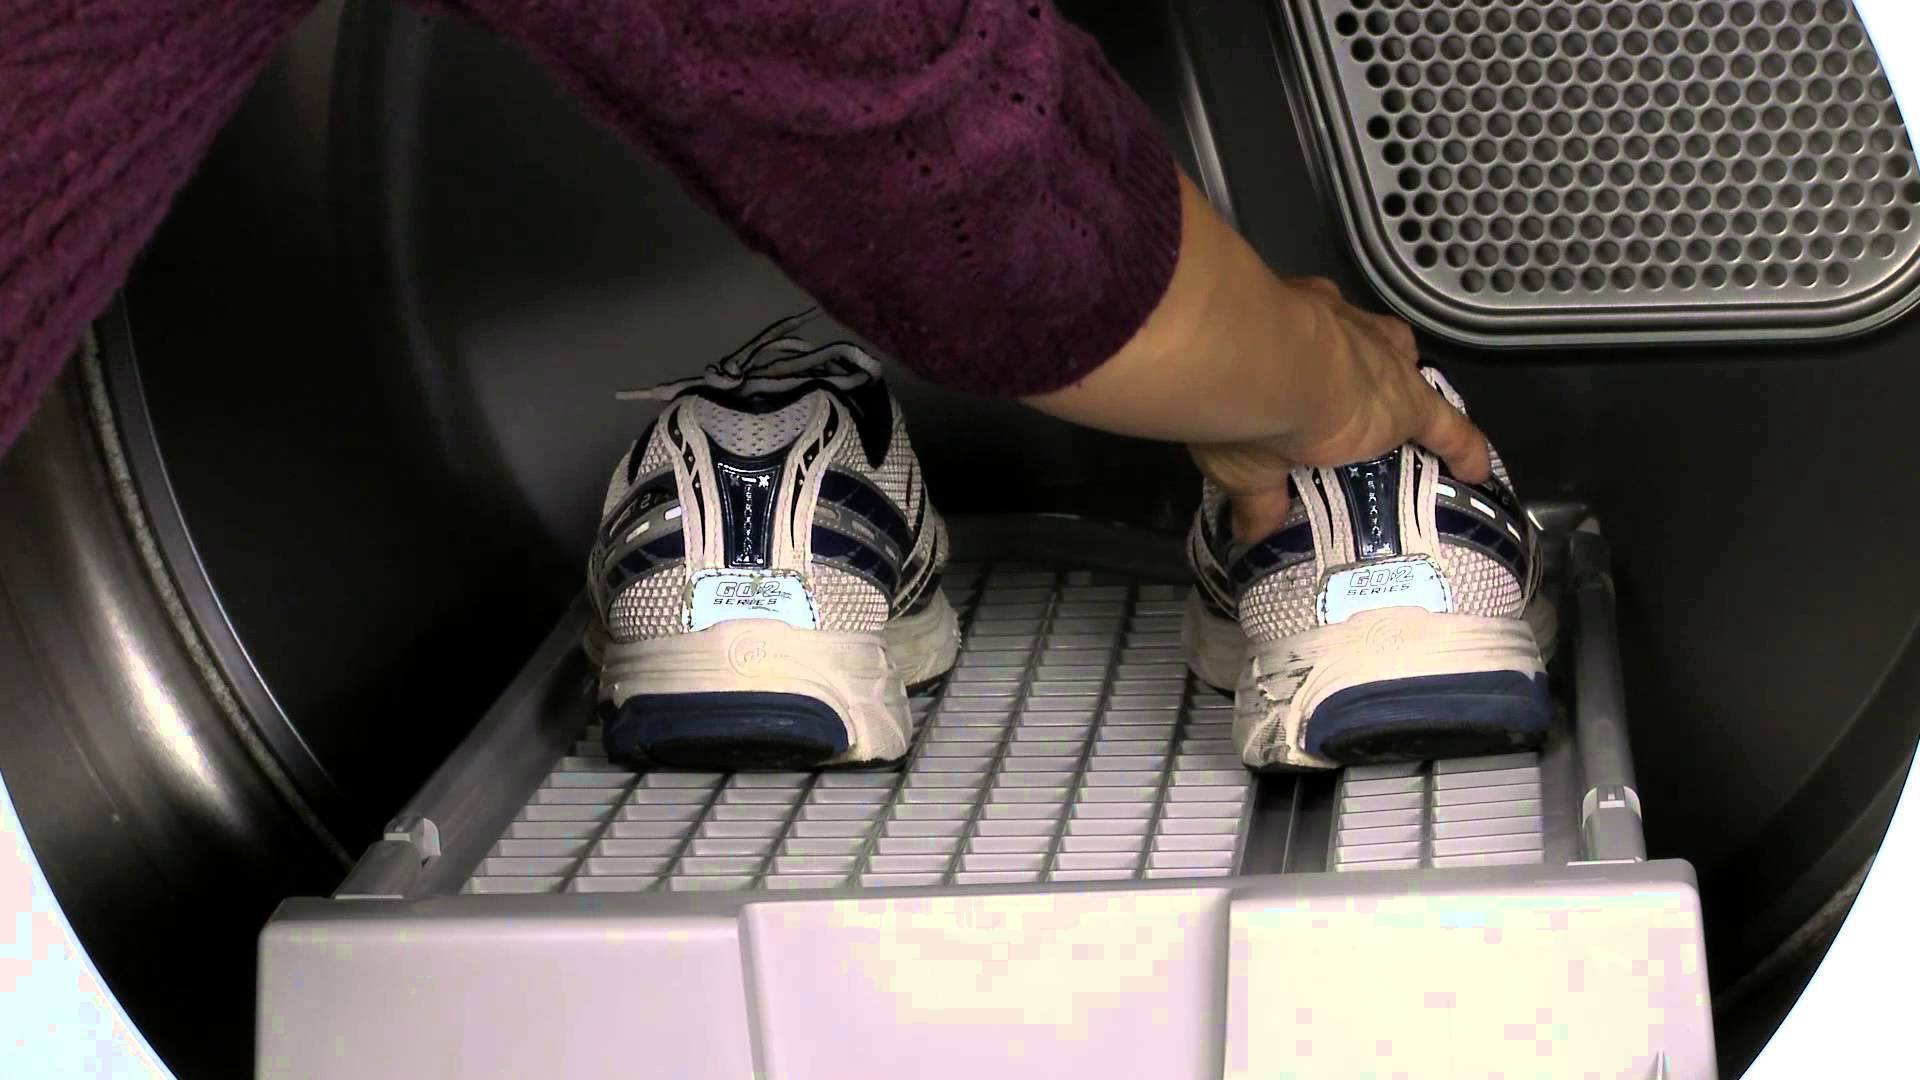 shoes being placed in dryer